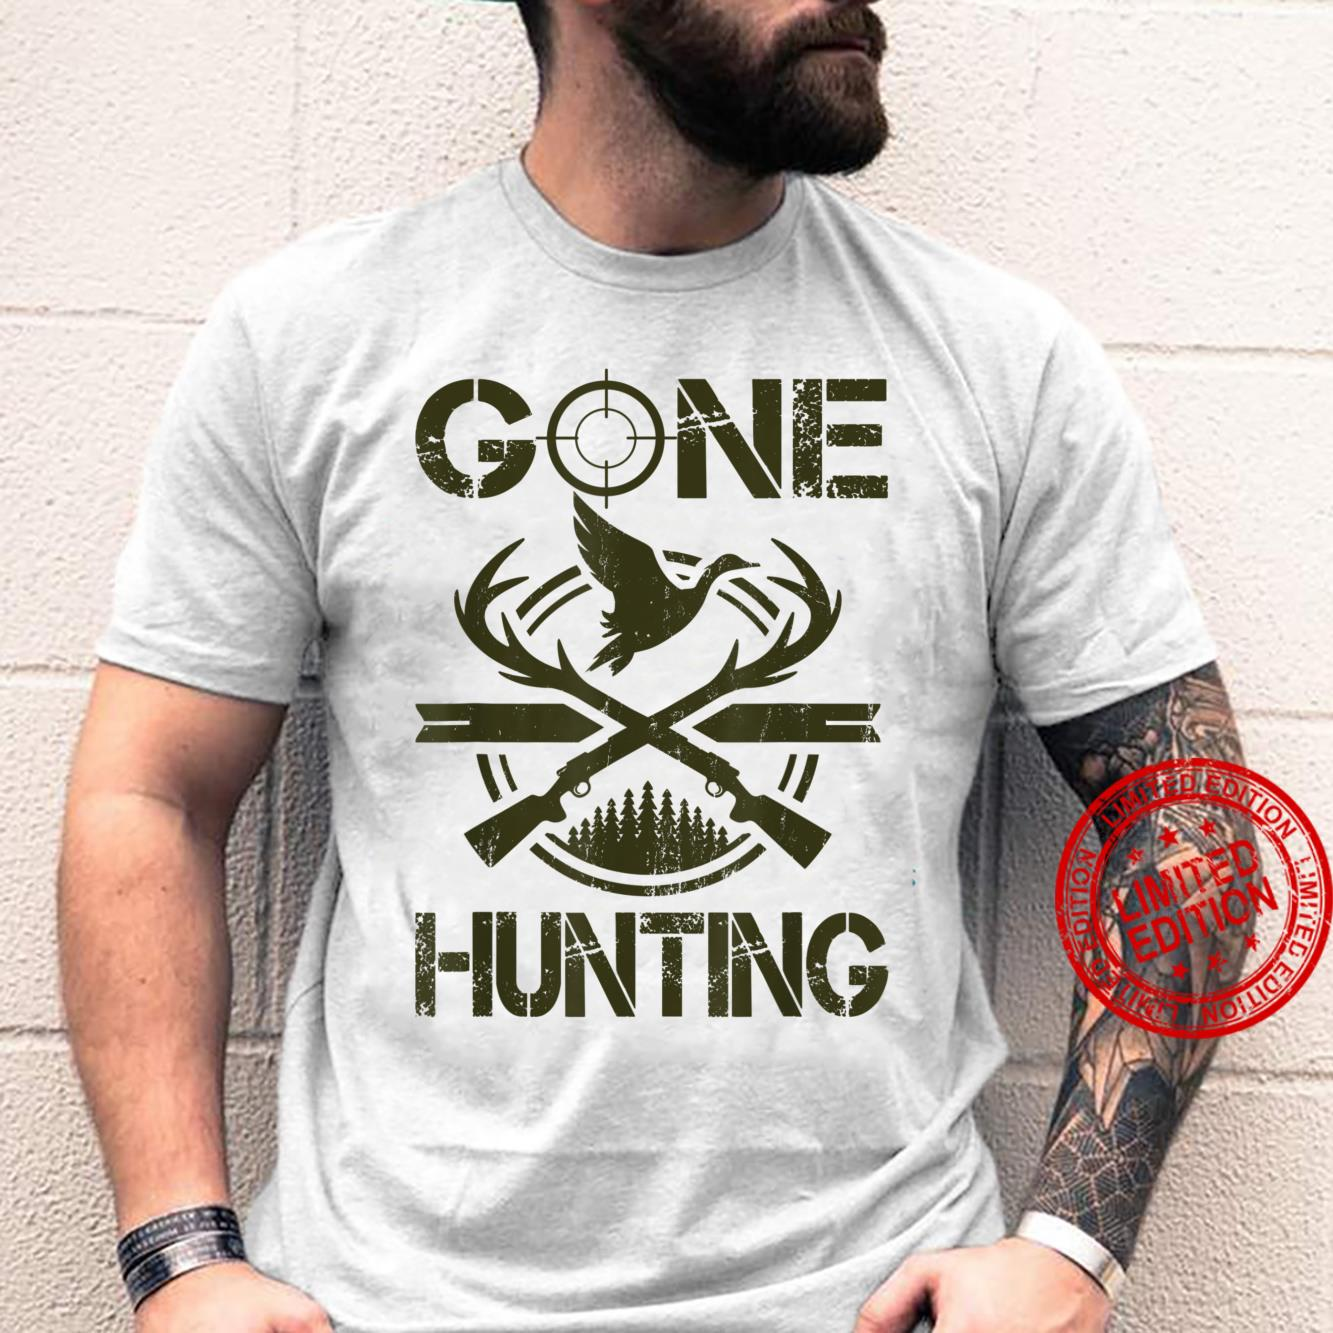 Funny duck hunting outfits for a Duck Hunting Shirt